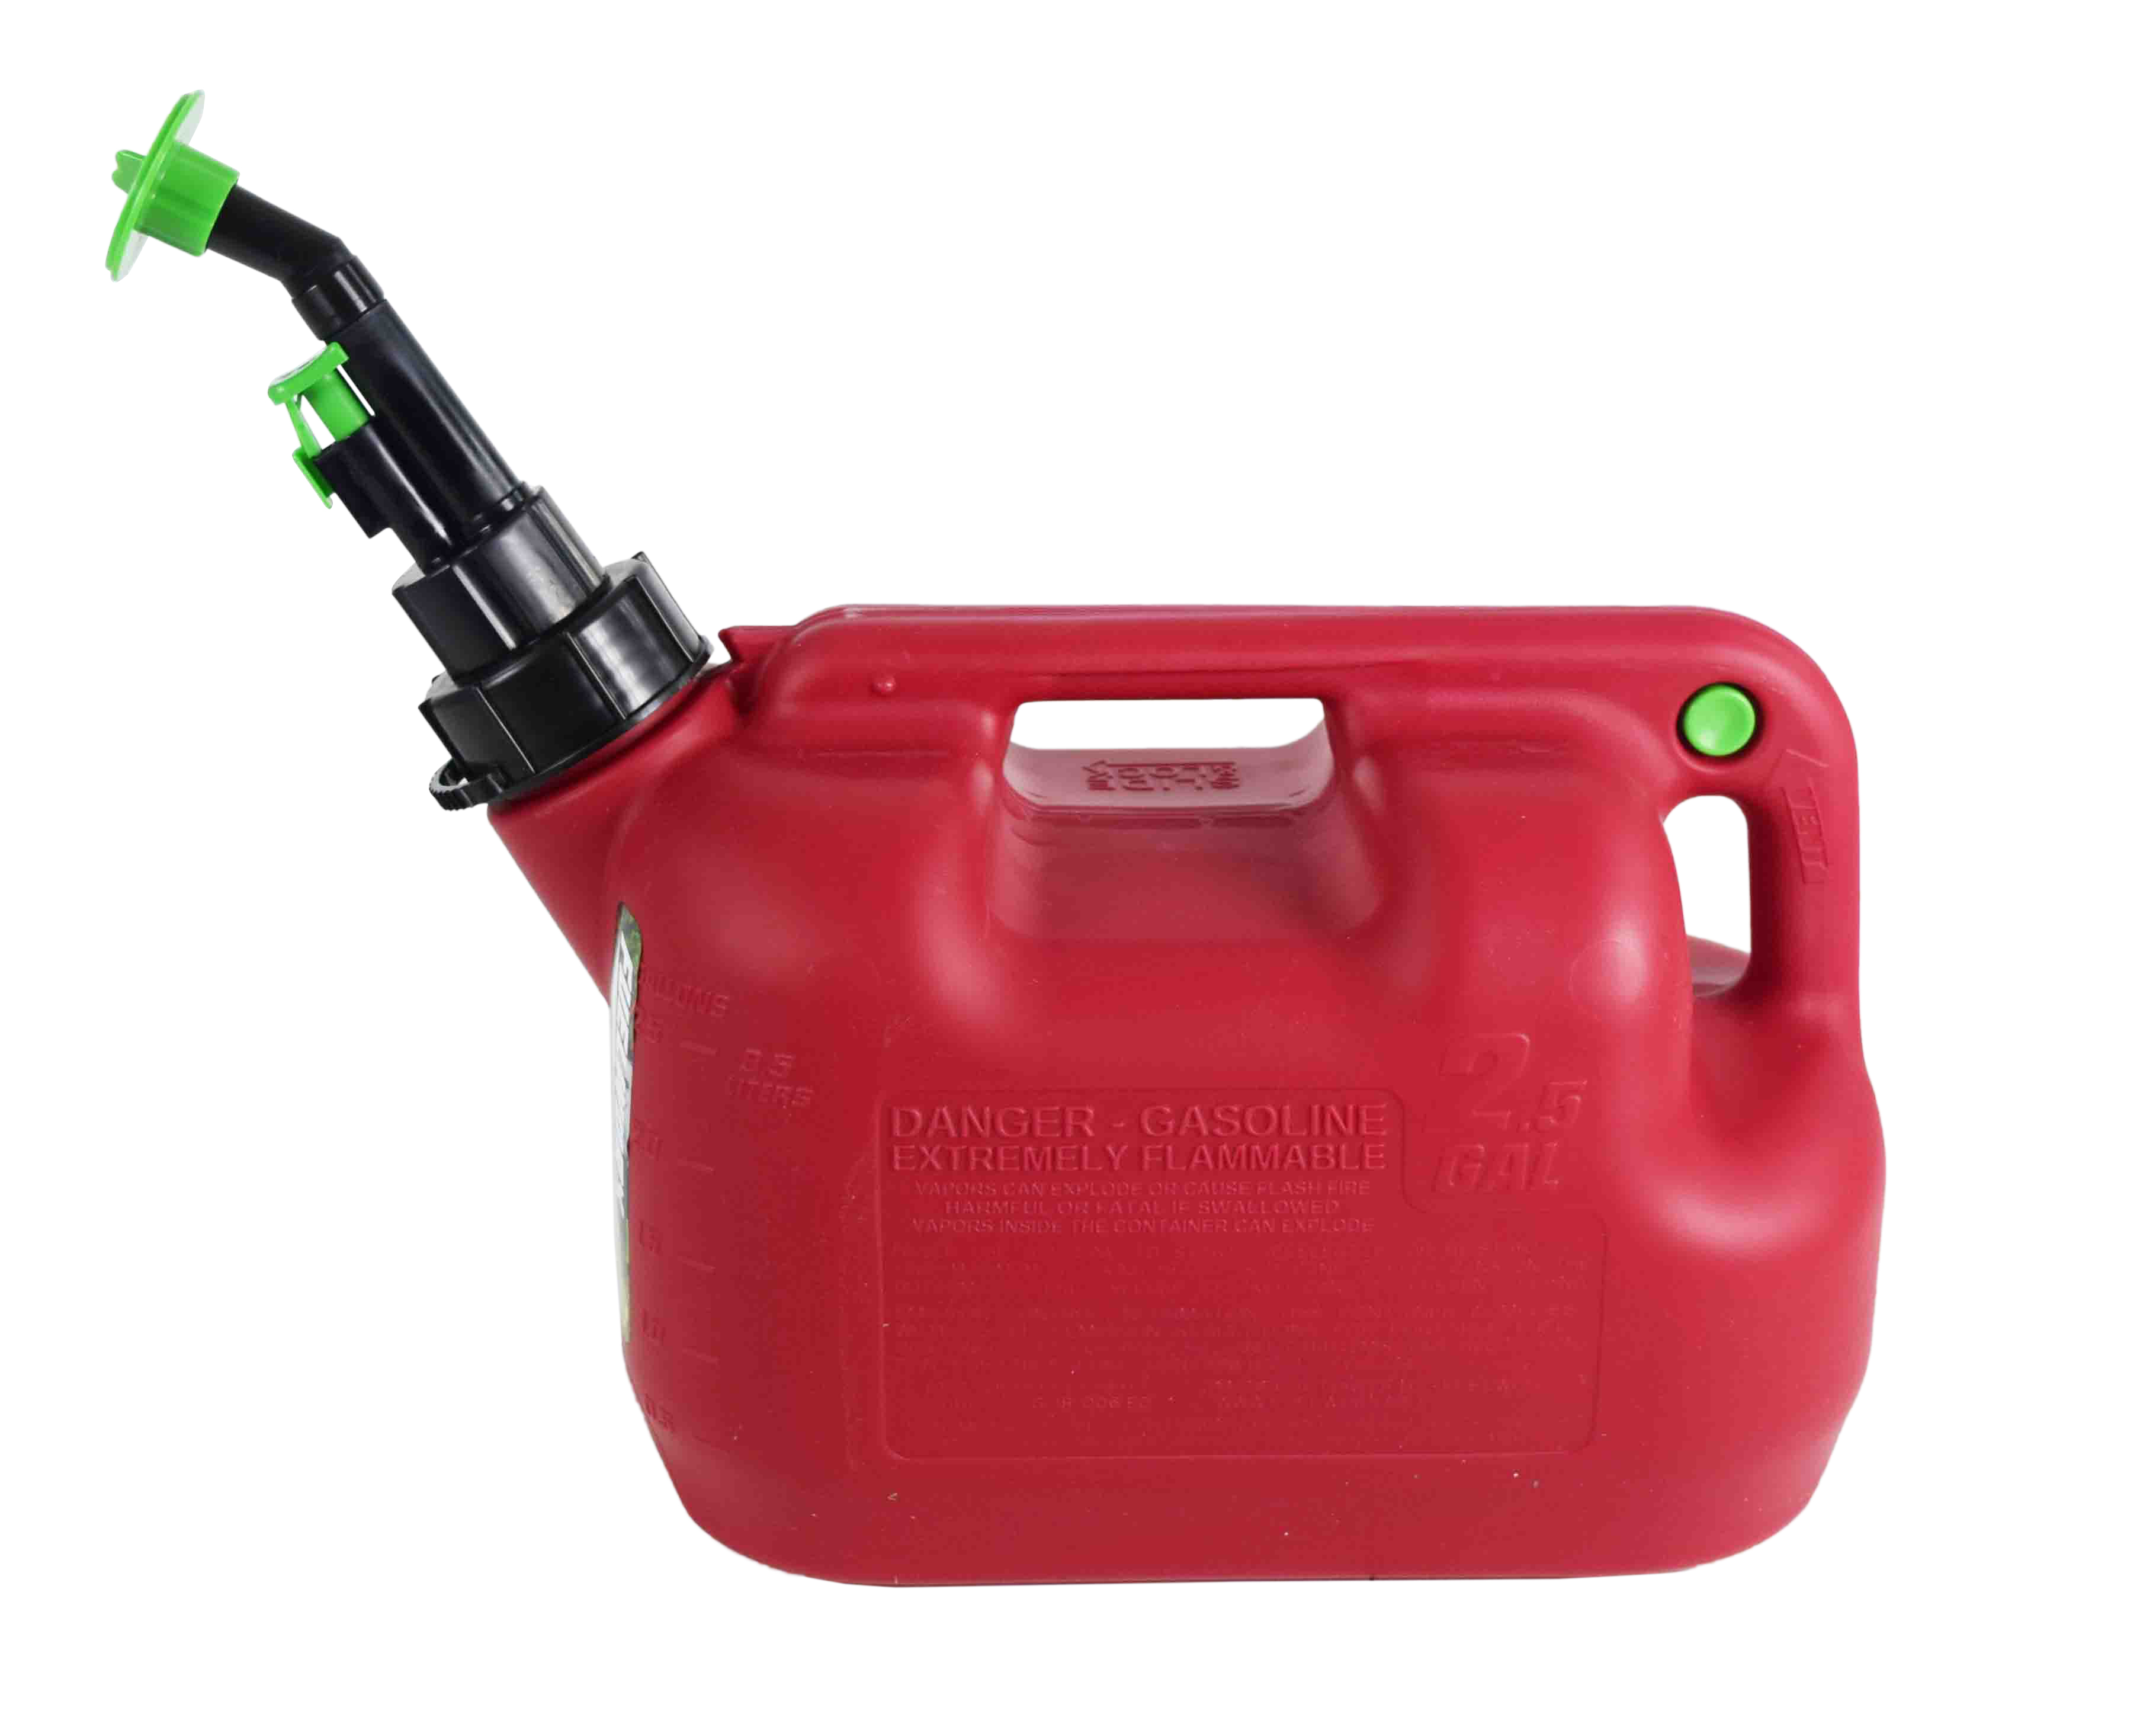 Fuelworx-Red-2.5-Gallon-Stackable-Fast-Pour-Gas-Fuel-Cans-CARB-Compliant-Made-in-The-USA-2.5-Gallon-Gas-Single-Can-image-2